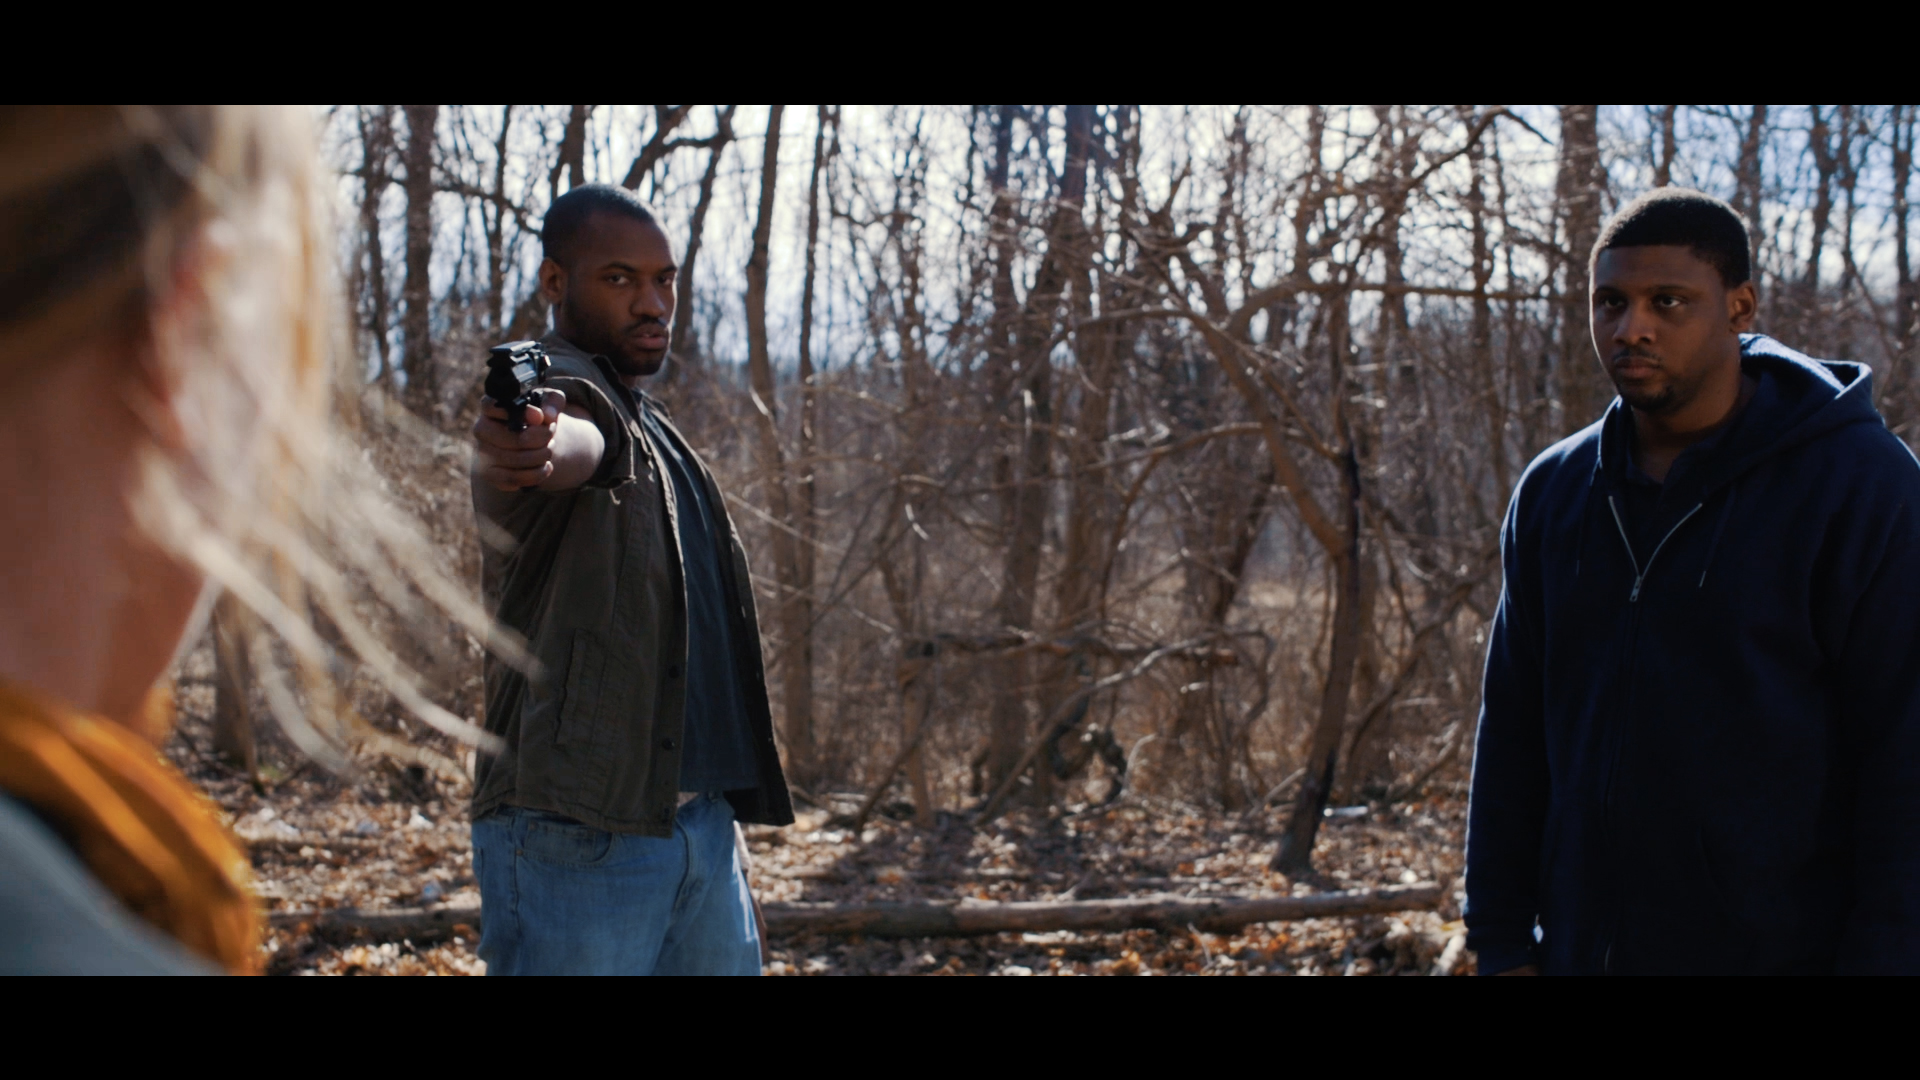 Another shot with a gun in it. This one is from a test shoot for a webseries called Reactiavtion.